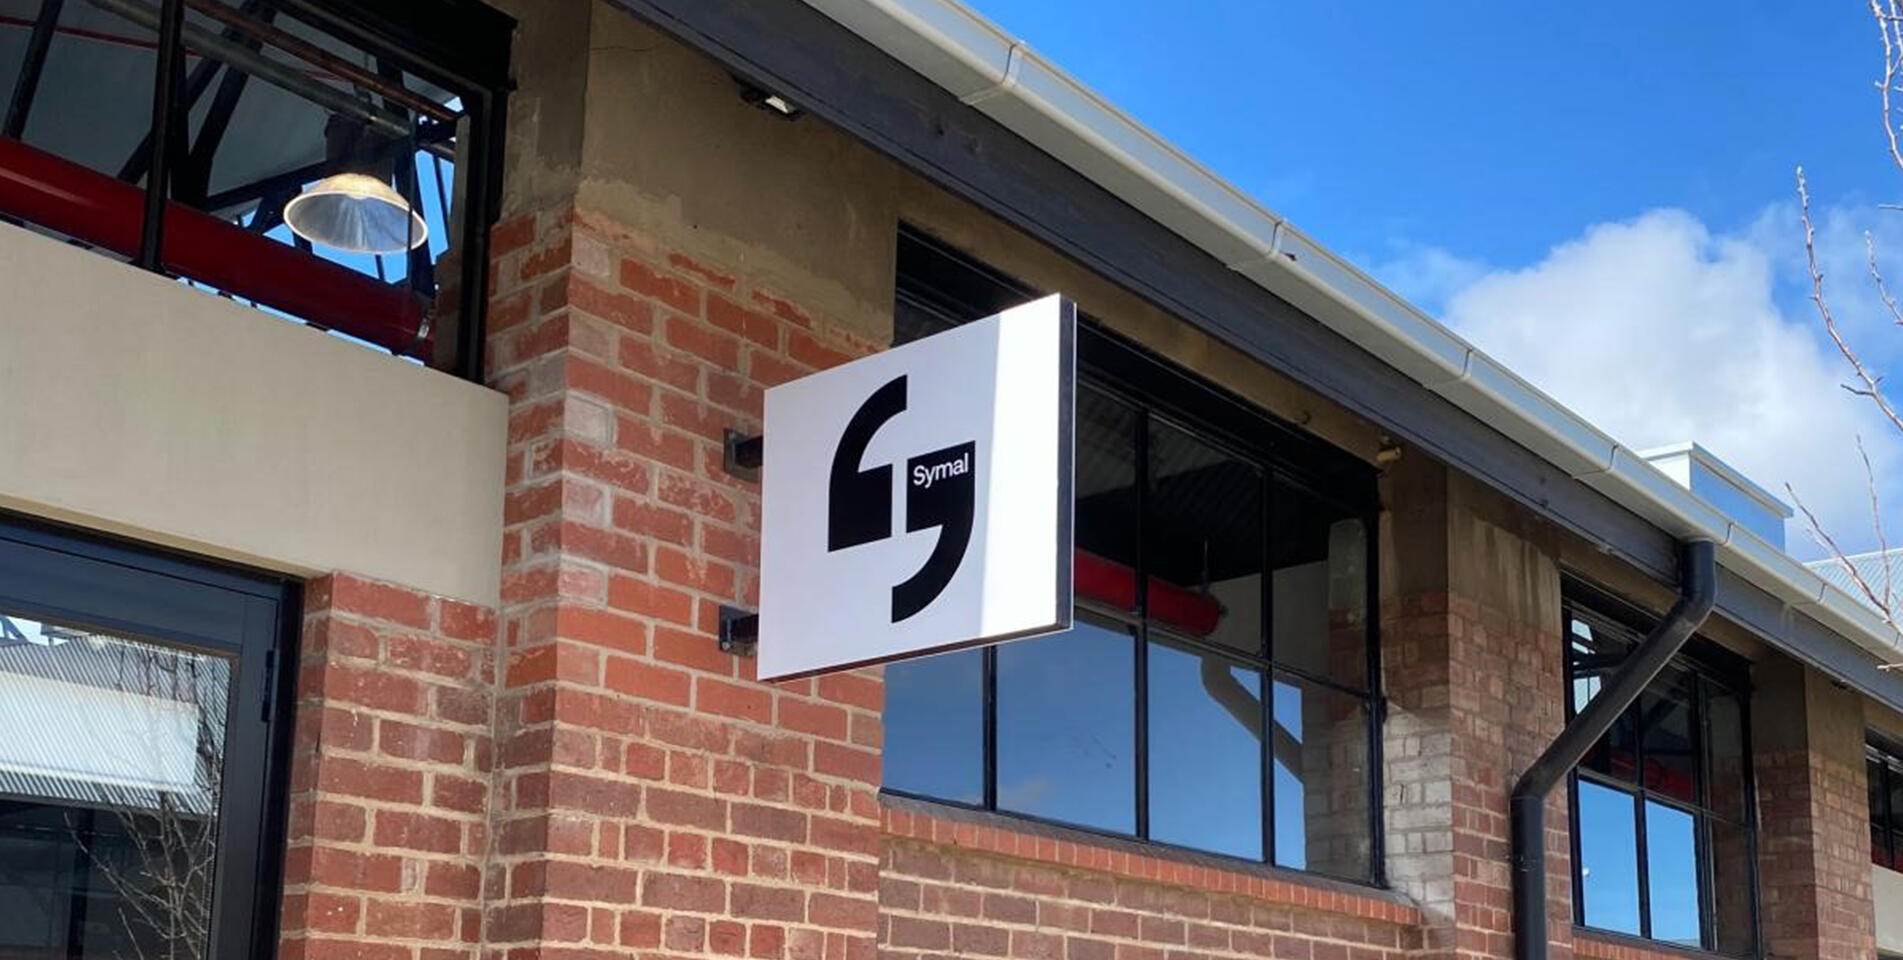 Symal's new Geelong office